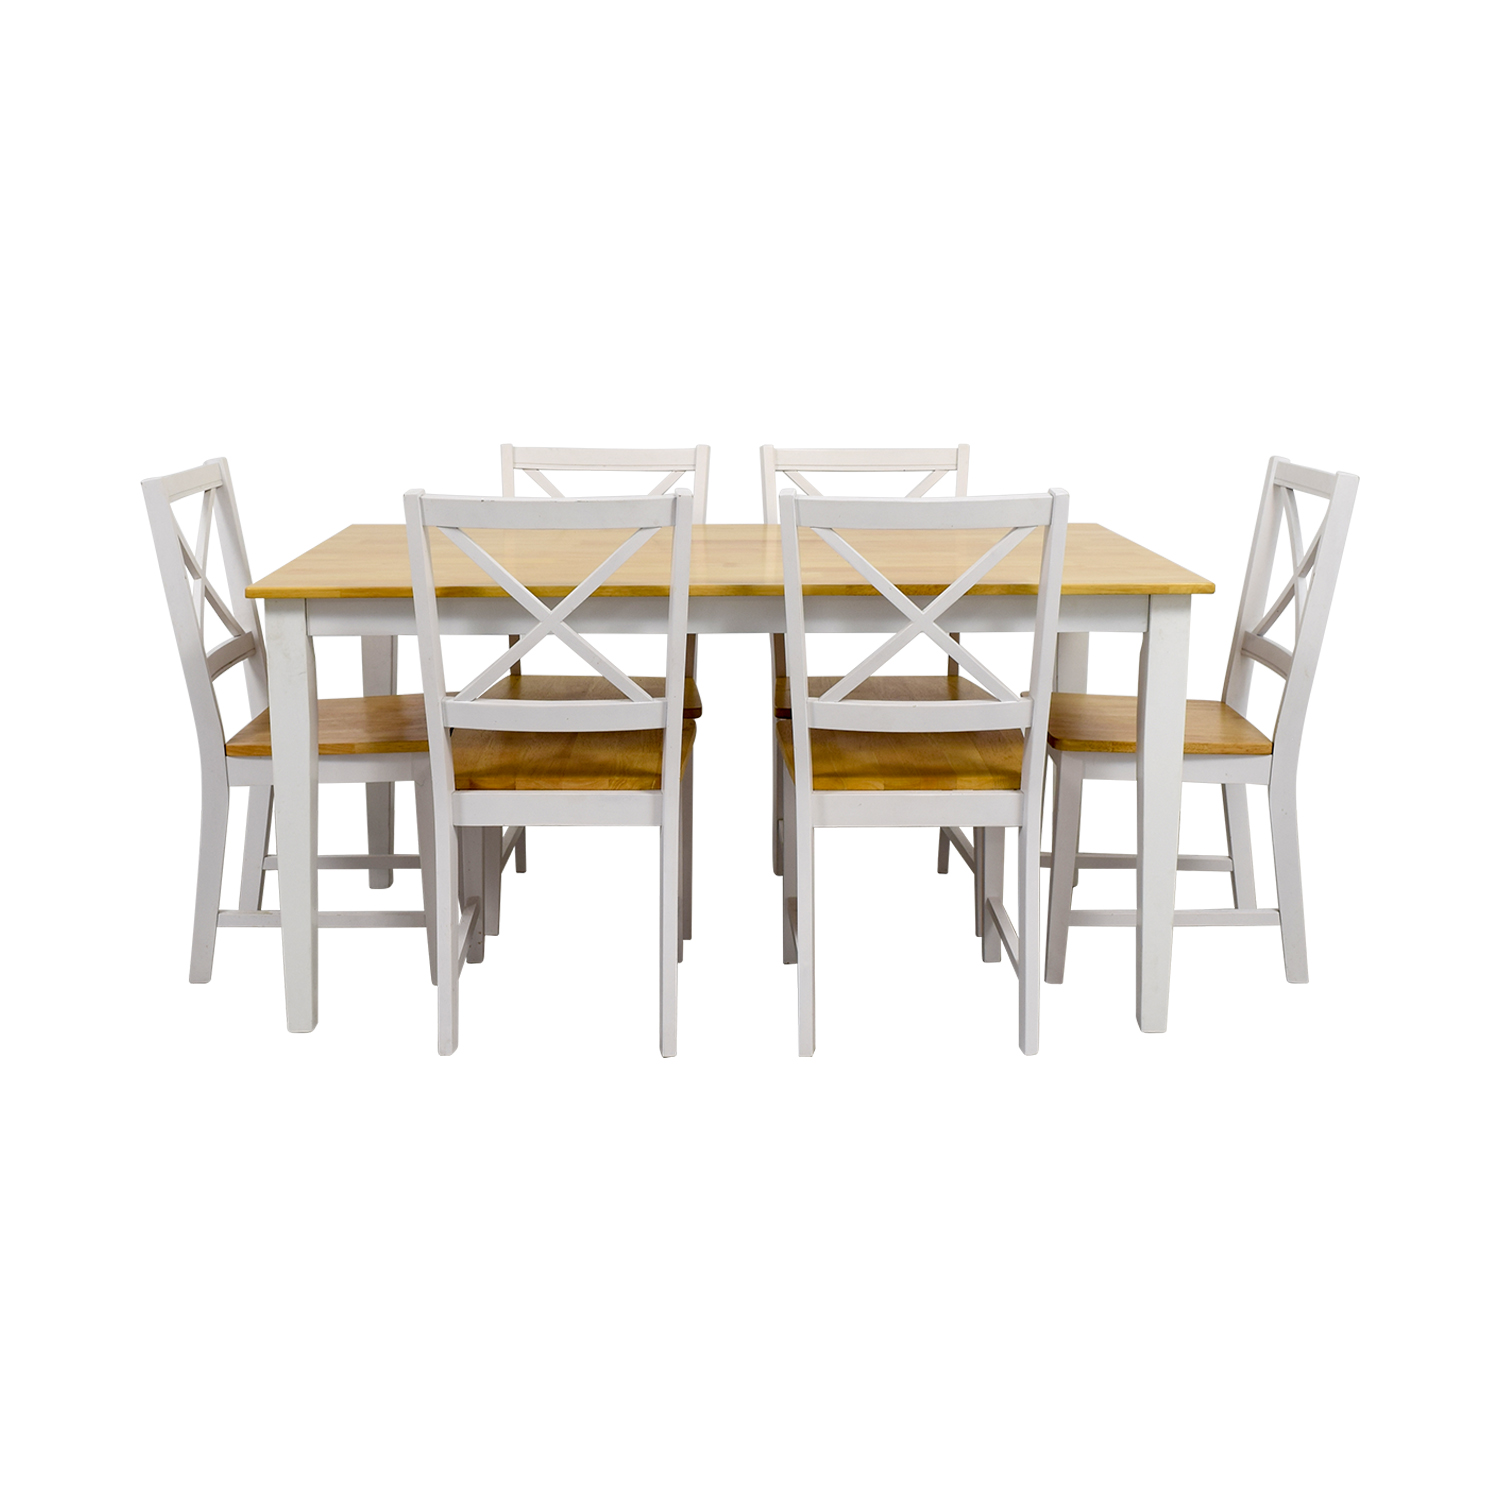 Beech Wood and White Dining Set sale